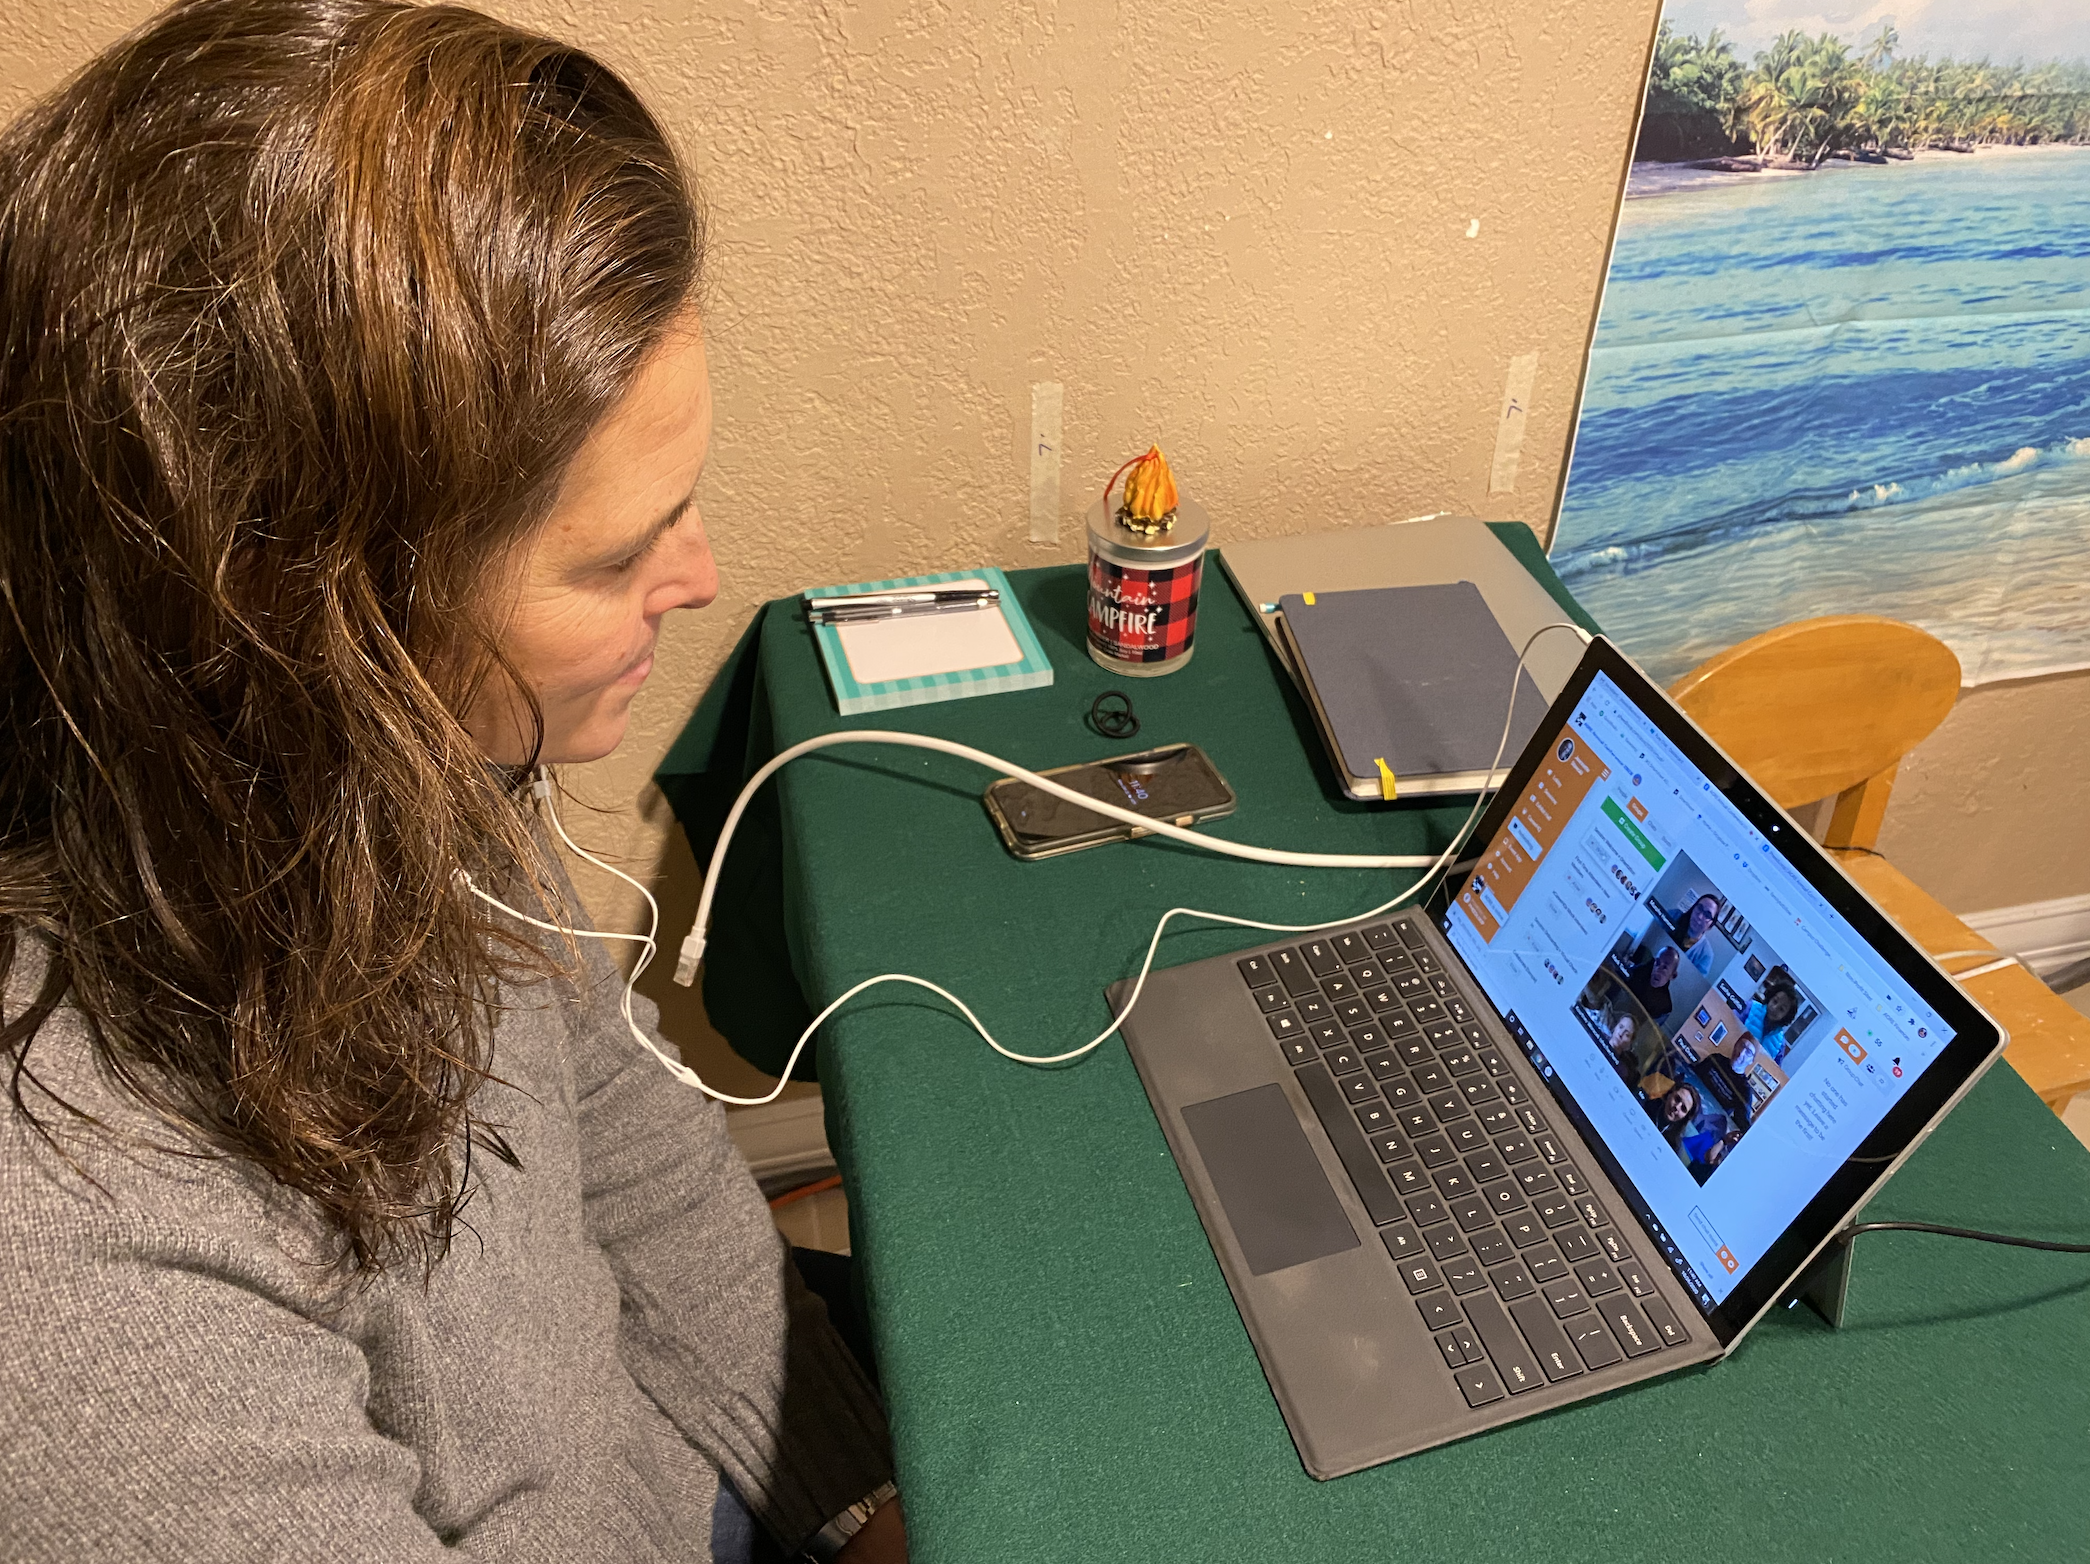 Jeannette Stawski video chats with conference attendees